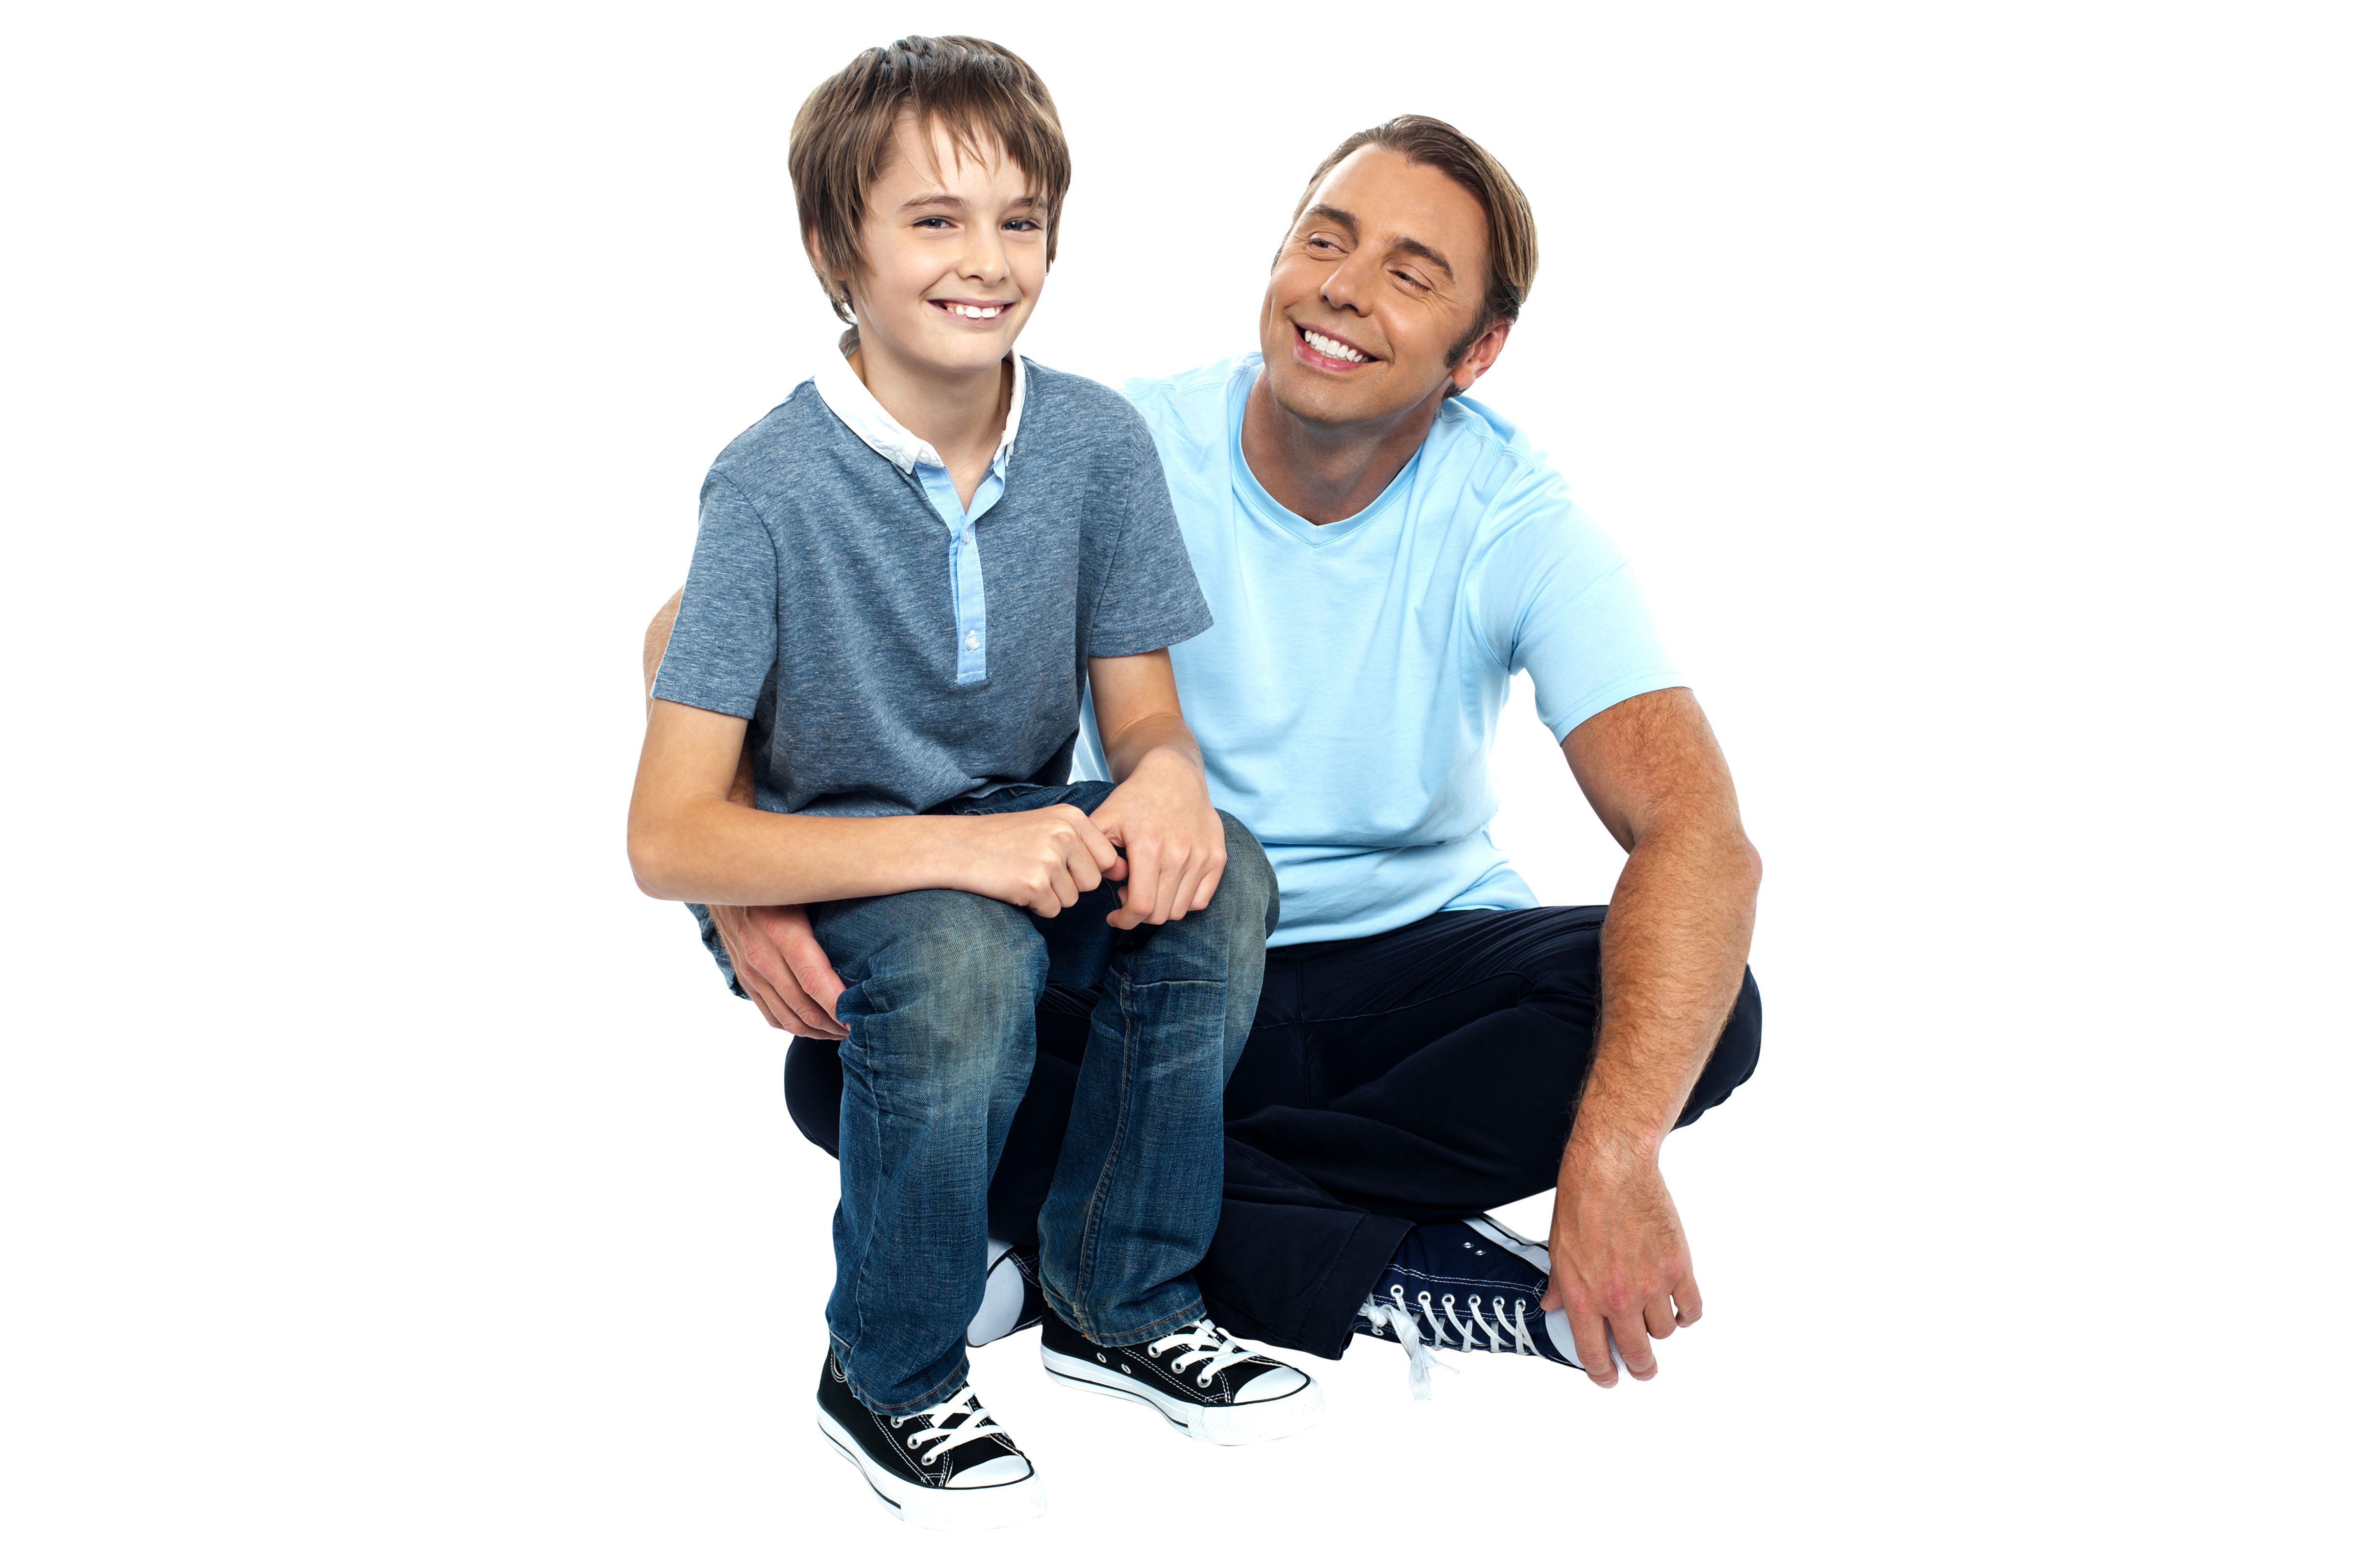 Father And Son Png Image Expectant Father Father And Son Fatherhood